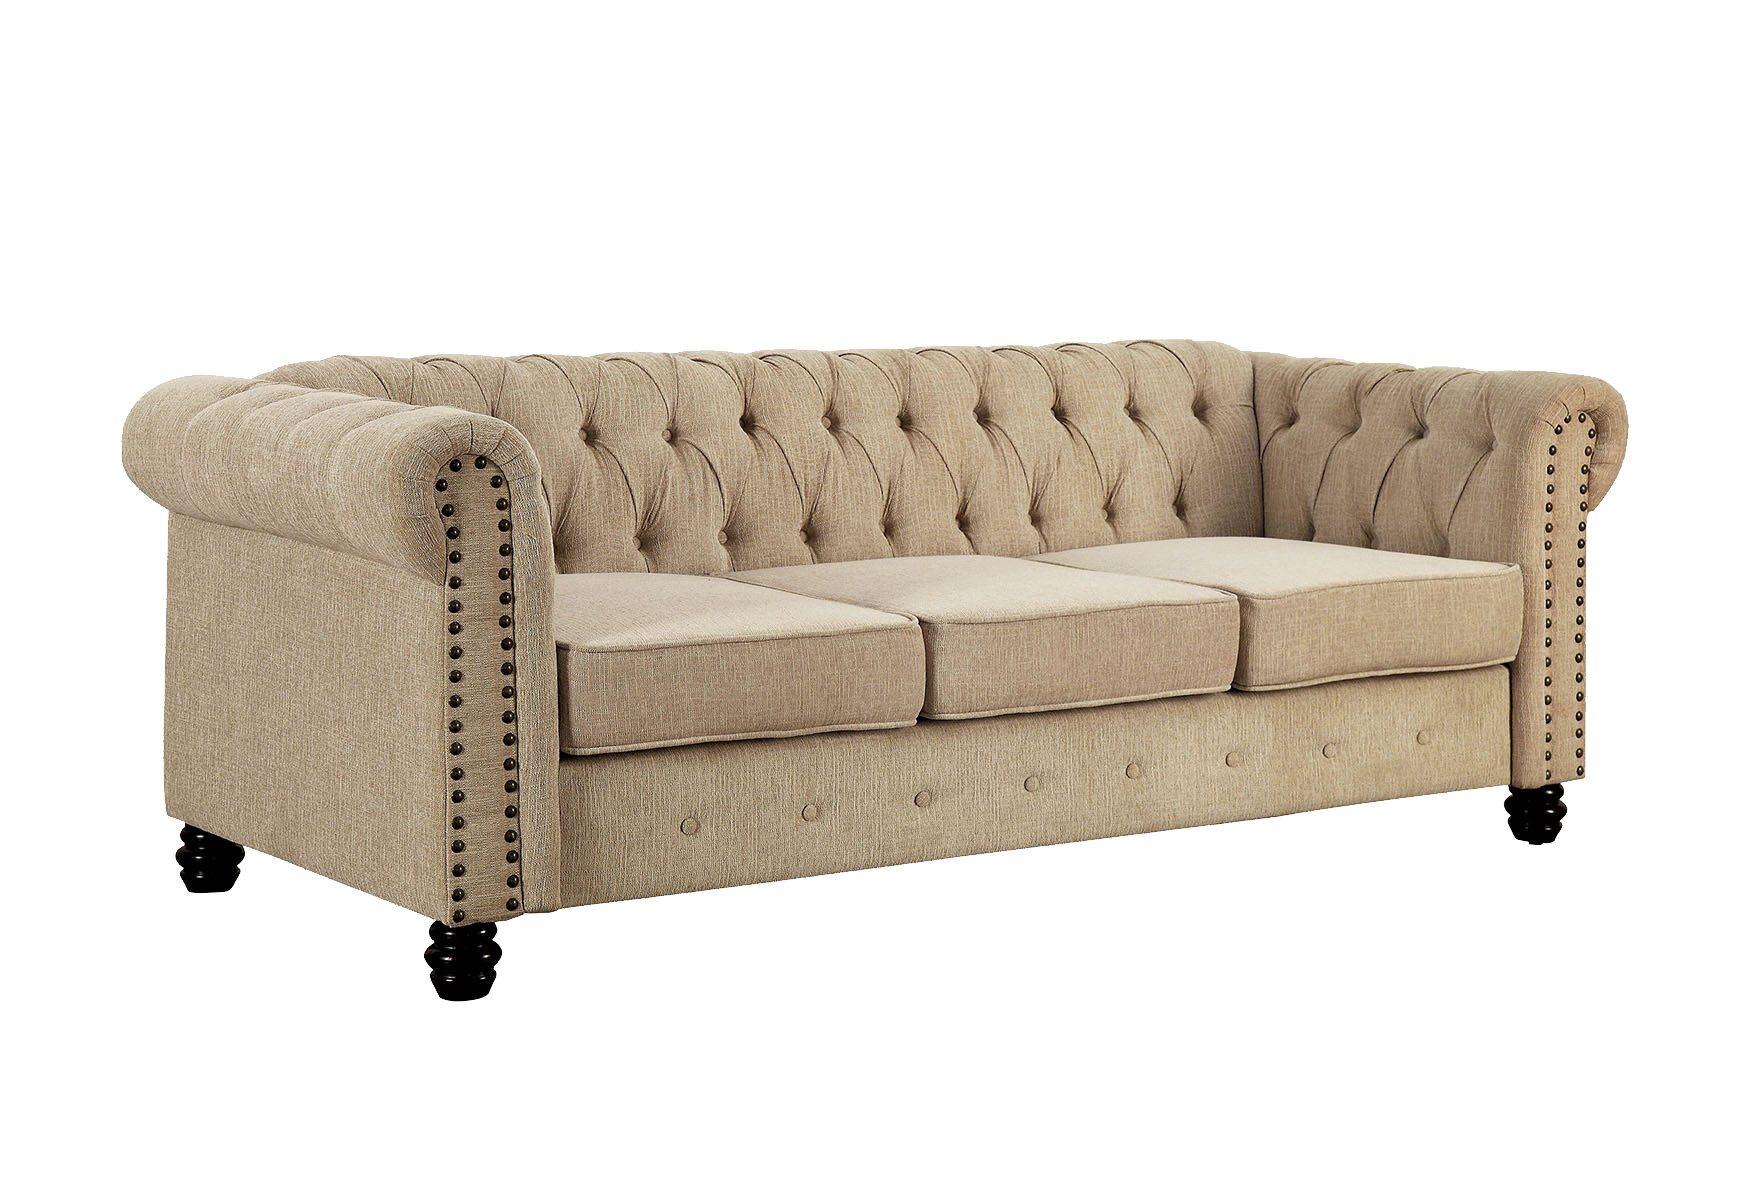 Alcott Hill Bowley 81 Wide Rolled Arm Chesterfield Sofa Reviews Wayfair